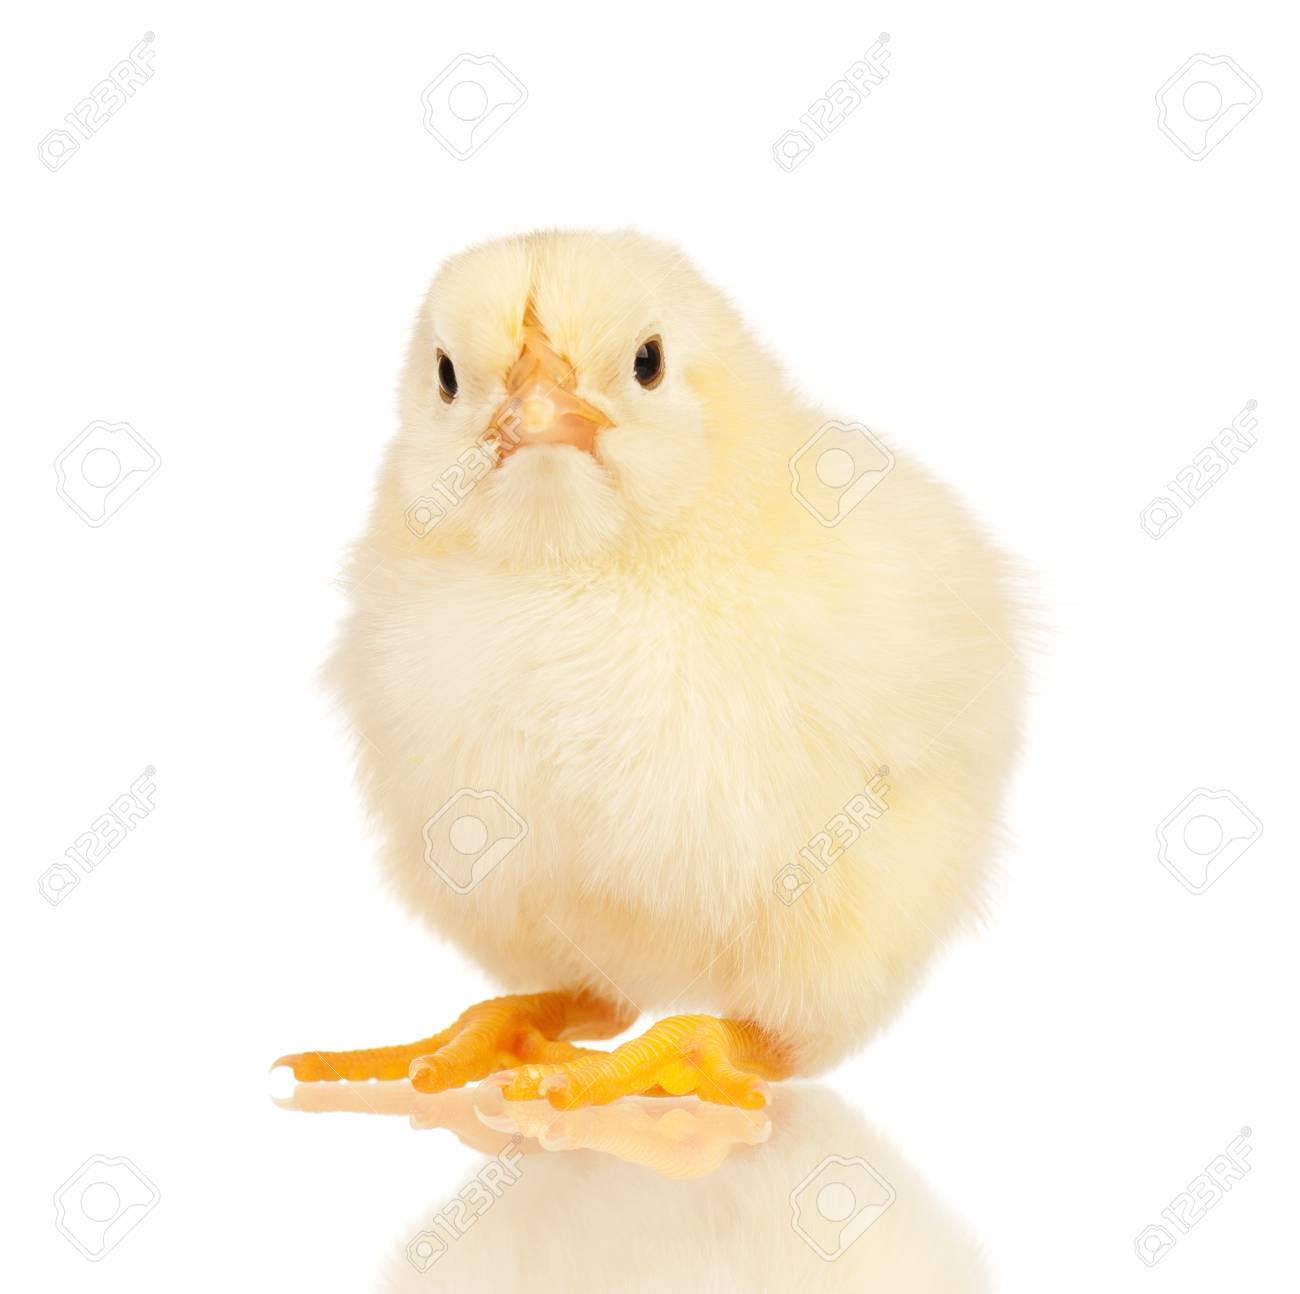 cute little chicken isolated on white background stock photo